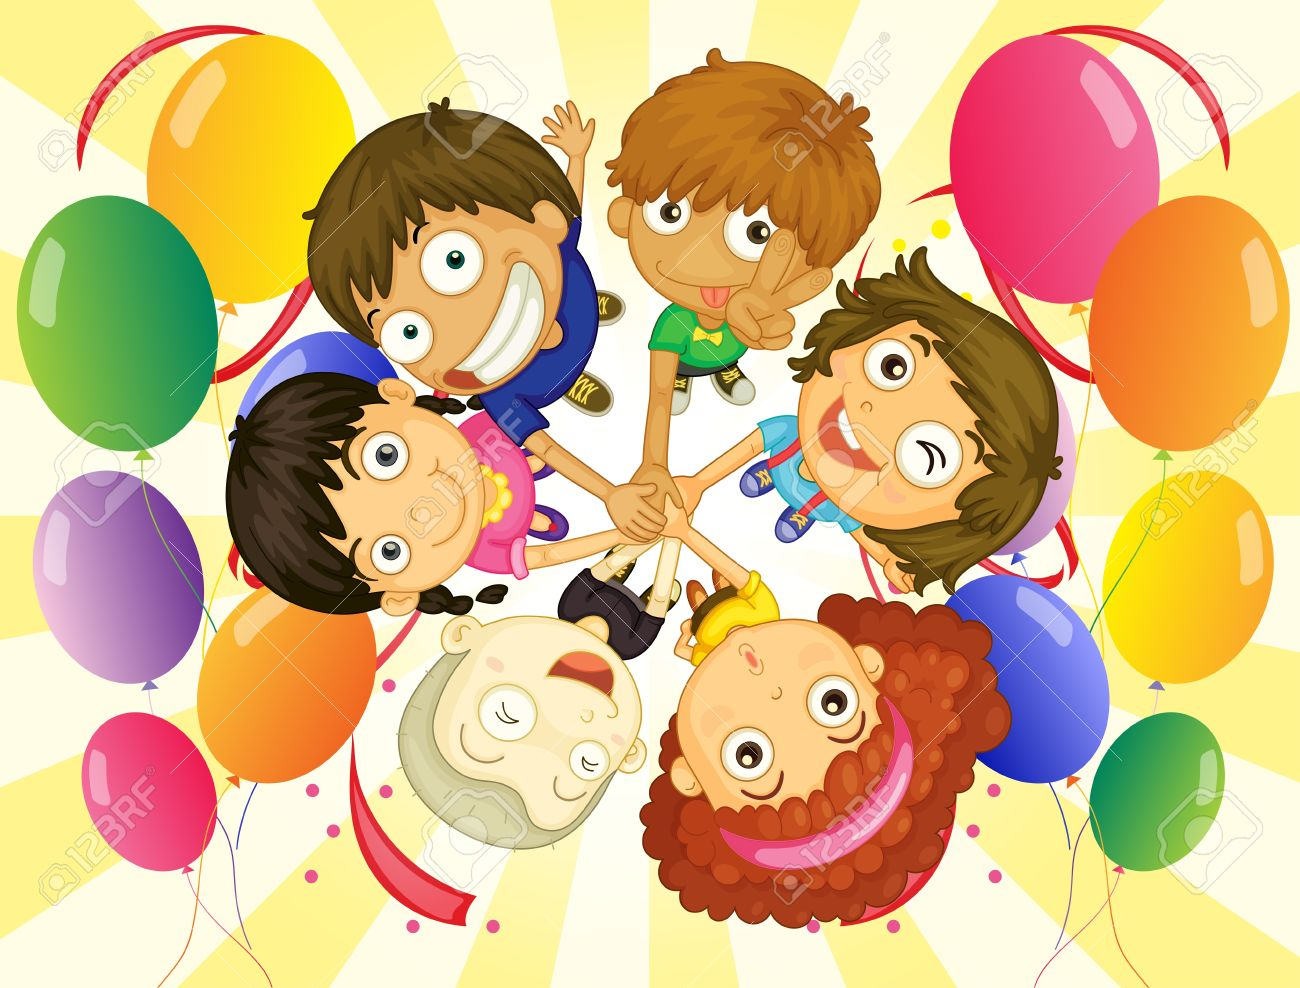 Illustration of the kids in a party on a white background Stock Vector - 18458926